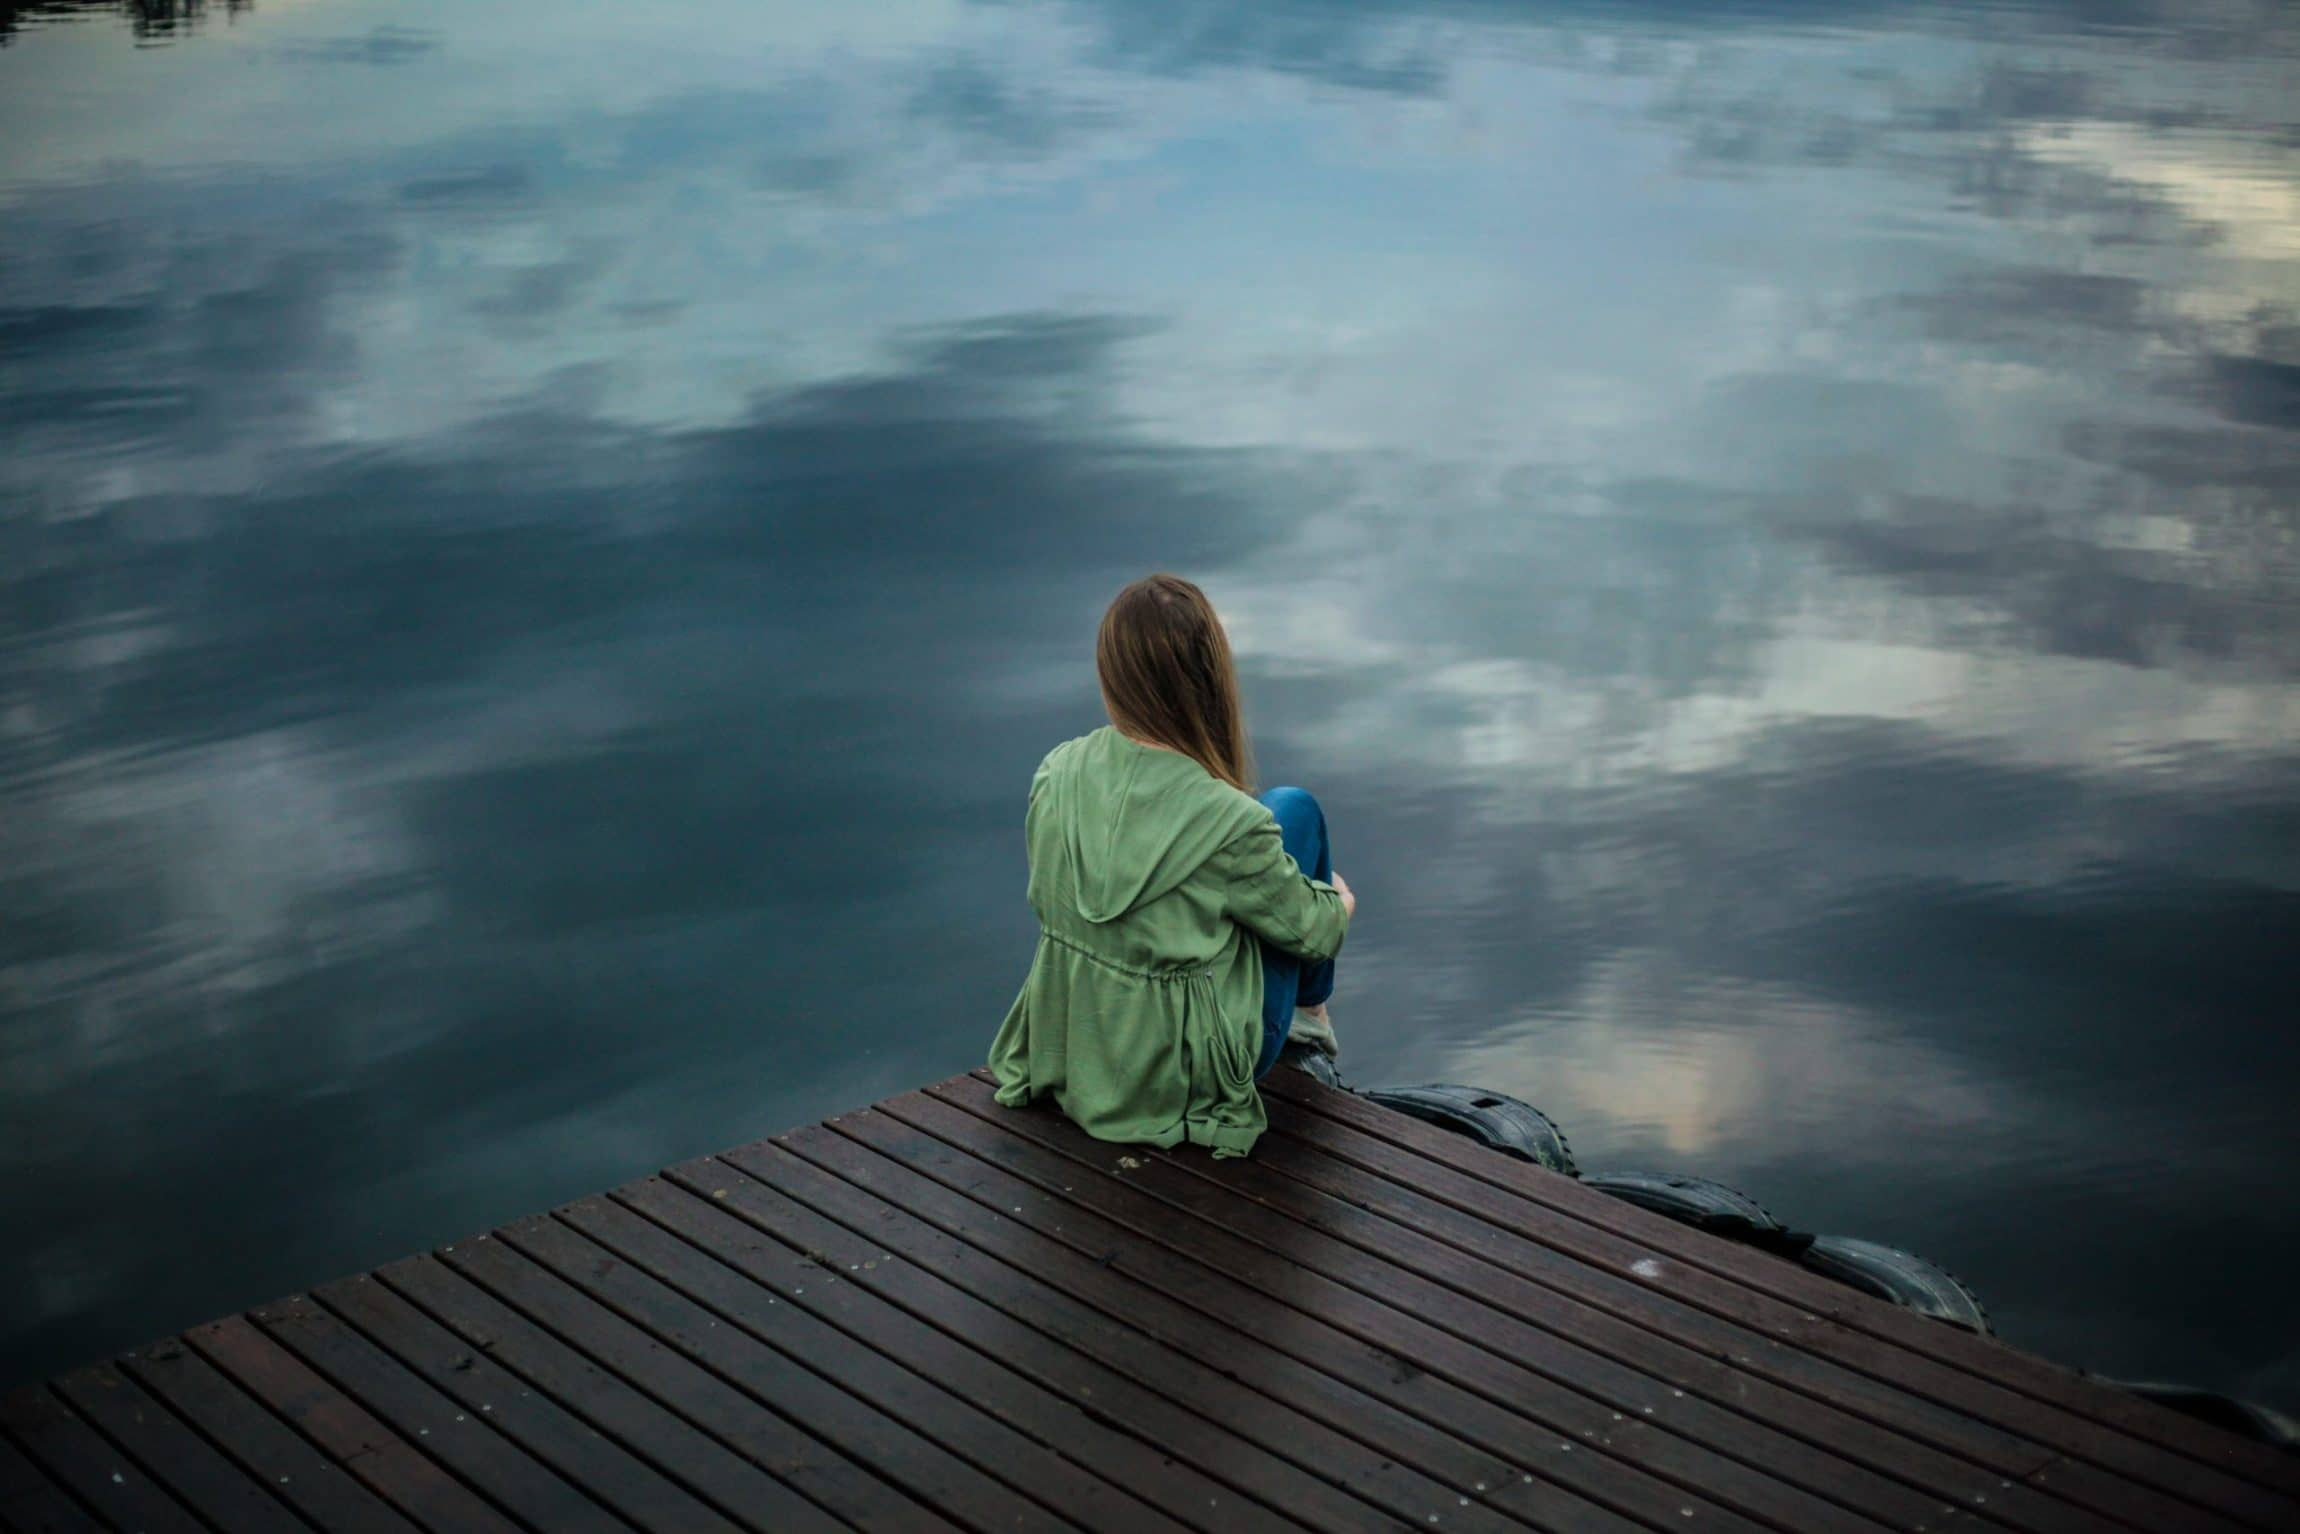 Autophobia: The Fear of Being Alone